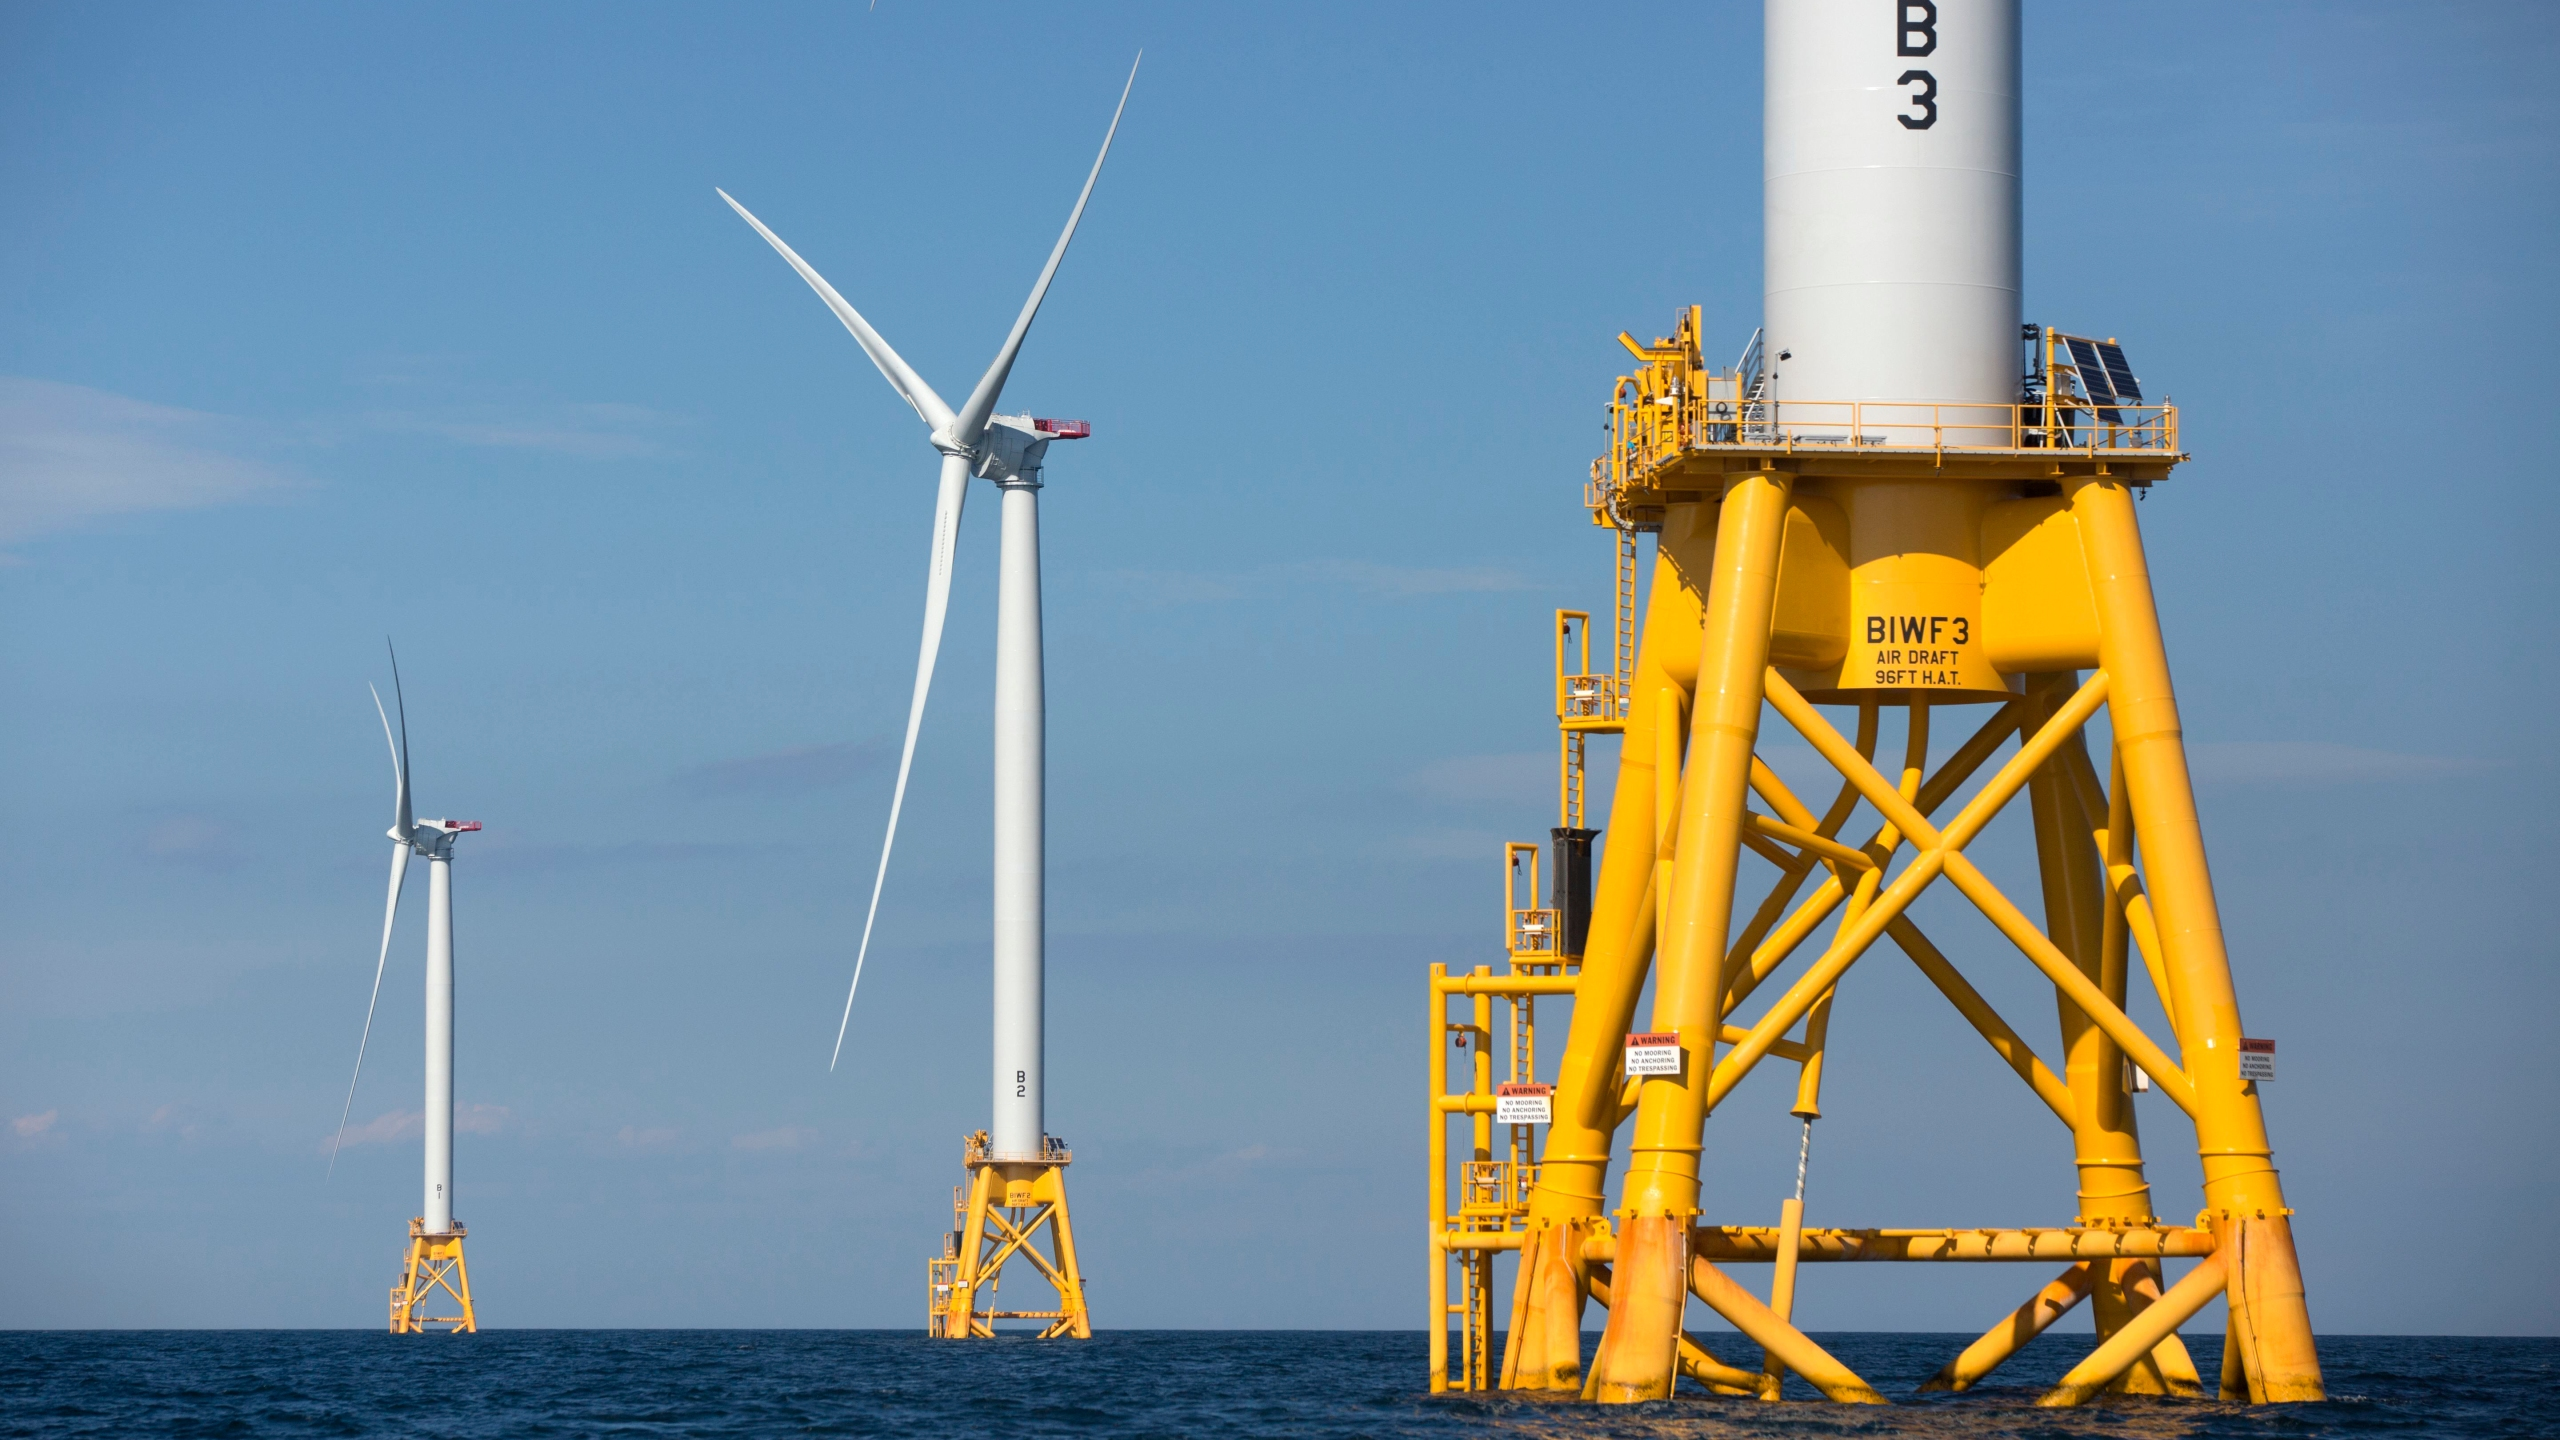 In this Aug. 15, 2016 file photo, three of Deepwater Wind's five turbines stand in the water off Block Island, R.I, the nation's first offshore wind farm. California and the federal government have agreed to open up areas off the central and northern coasts to massive wind farms. The pact announced Tuesday, May 25, 2021, that would float hundreds of turbines off the coast of Morro Bay and Humboldt Bay was touted as a breakthrough to eventually power 1.6 million homes. (AP Photo/Michael Dwyer, File)